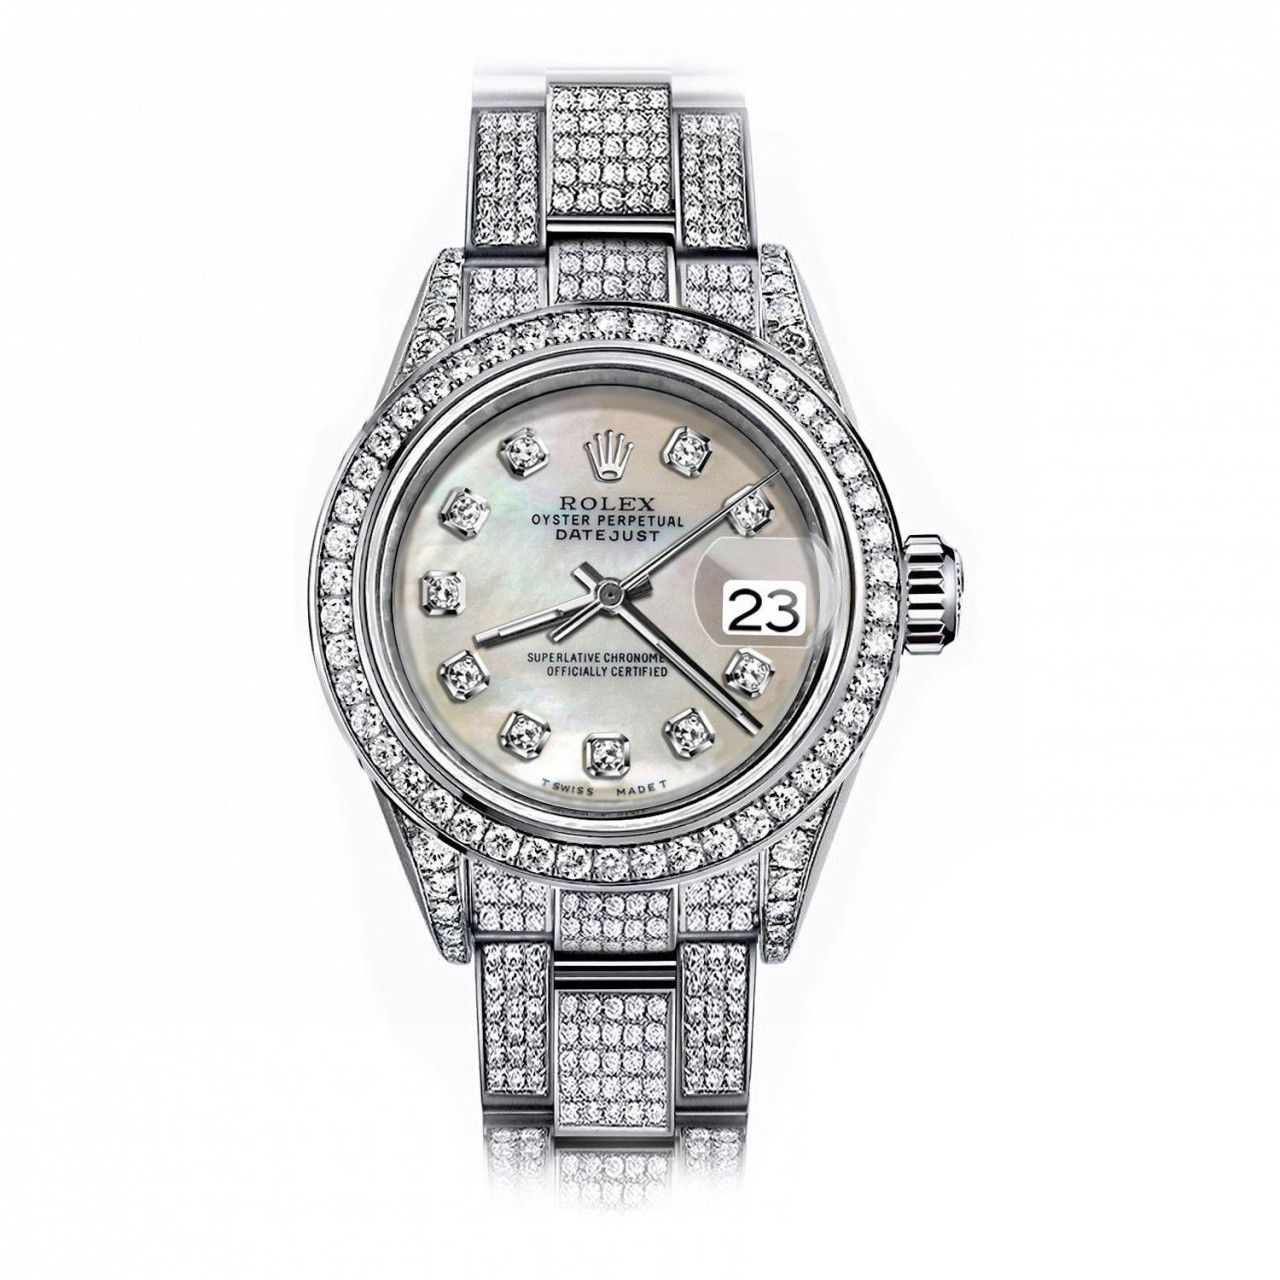 Stainless Rolex Rolex Ivory Pearl 36mm Datejust Stainless Steel Fully Iced Diamond Pave